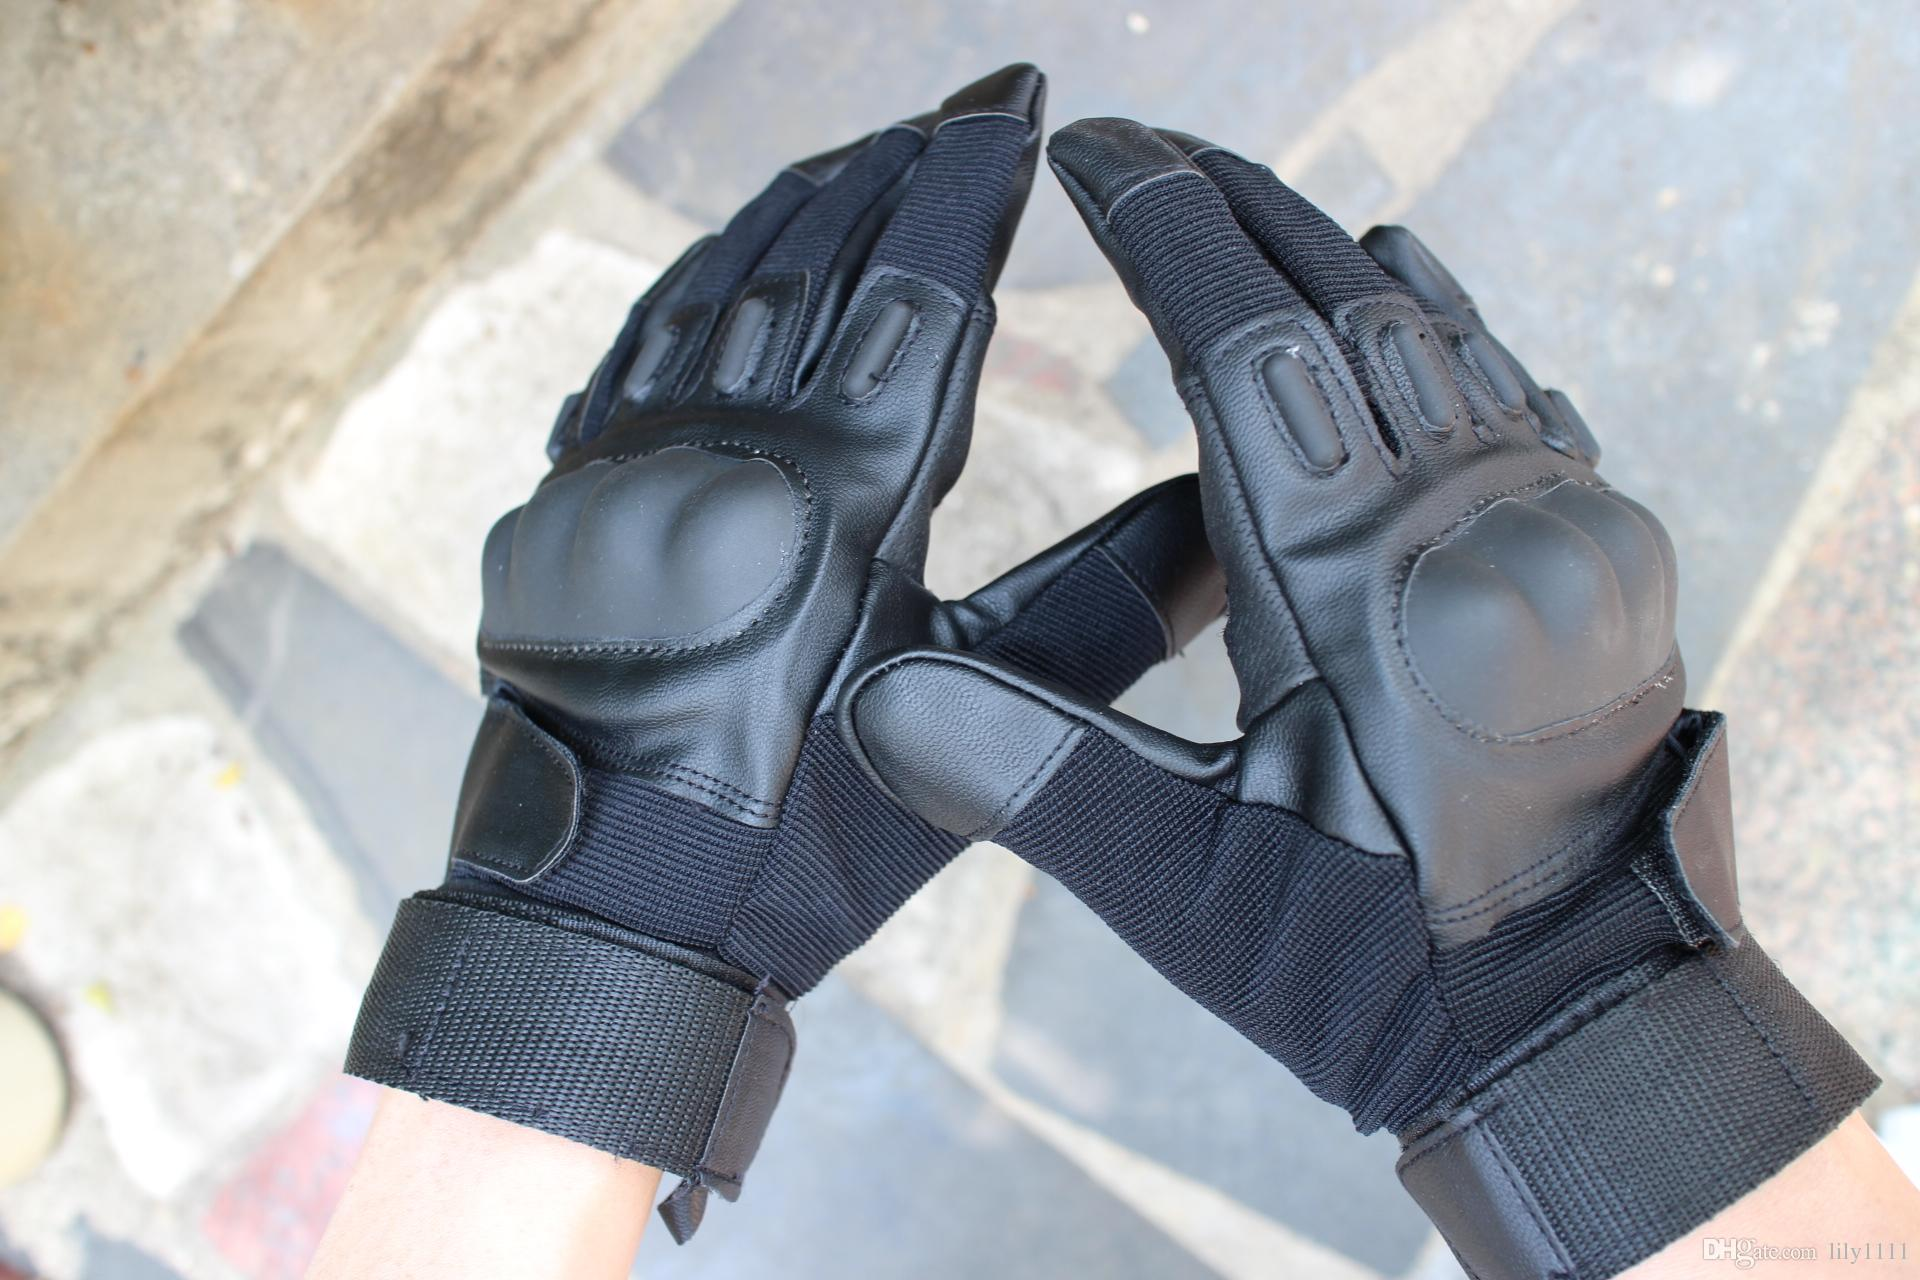 new sale Outdoor Sports Blackhawk Camping Military Tactical Gloves Swat Airsoft Hunting Motorcycle Cycling Racing gloves